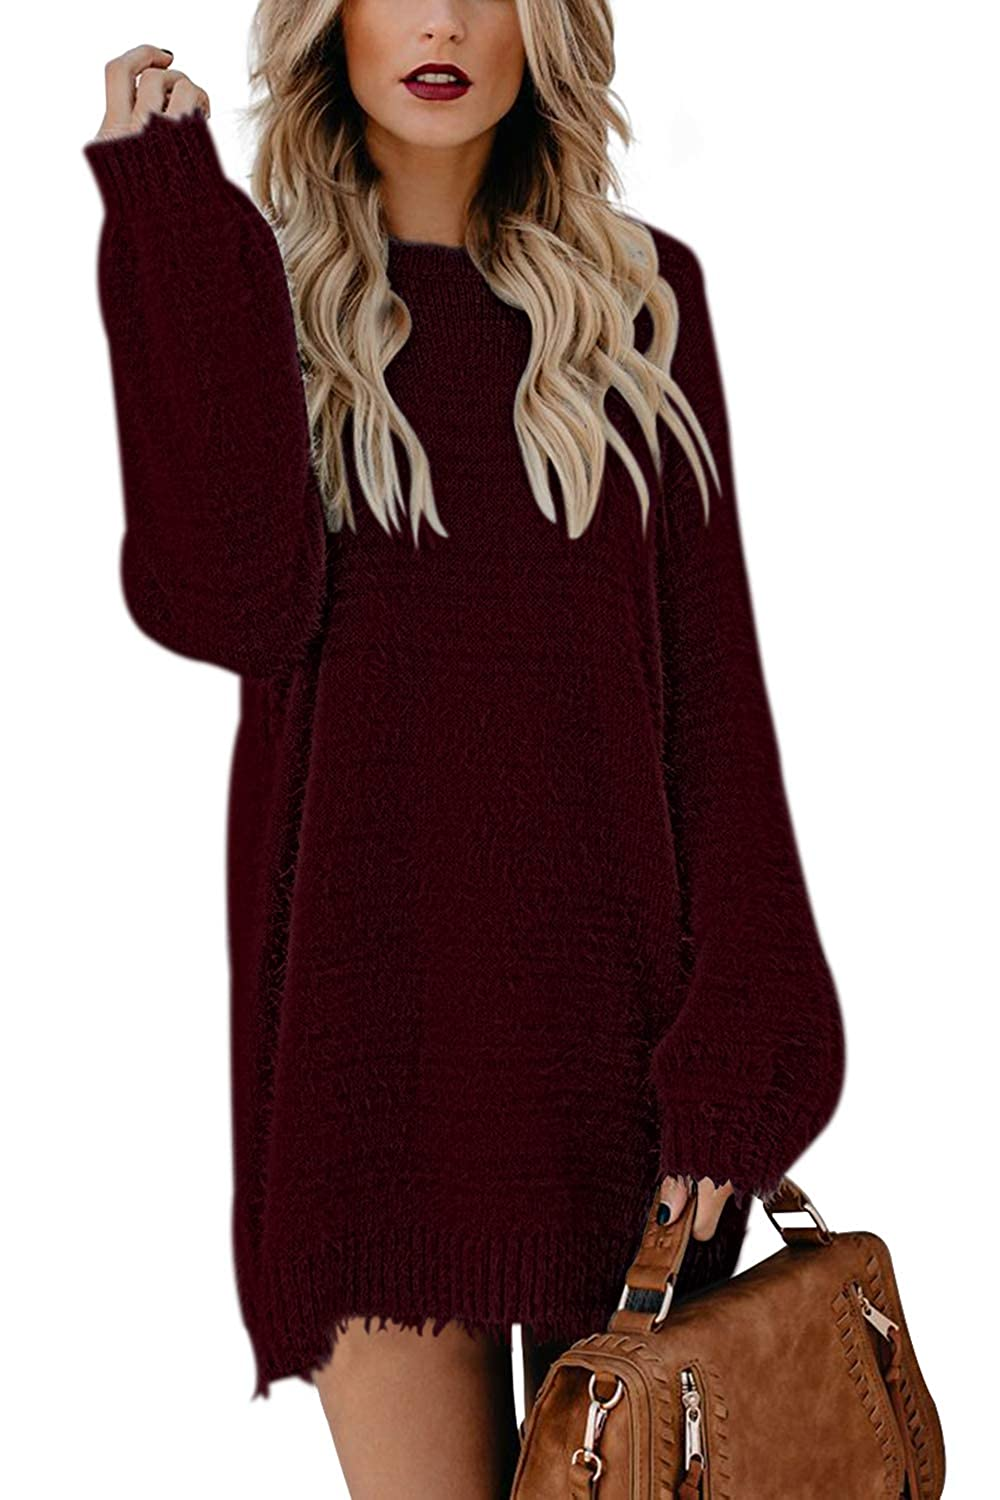 Pink Queen Womens Oversized Turtleneck Christmas Xmas Wool Pullover Sweater Dress with Pockets